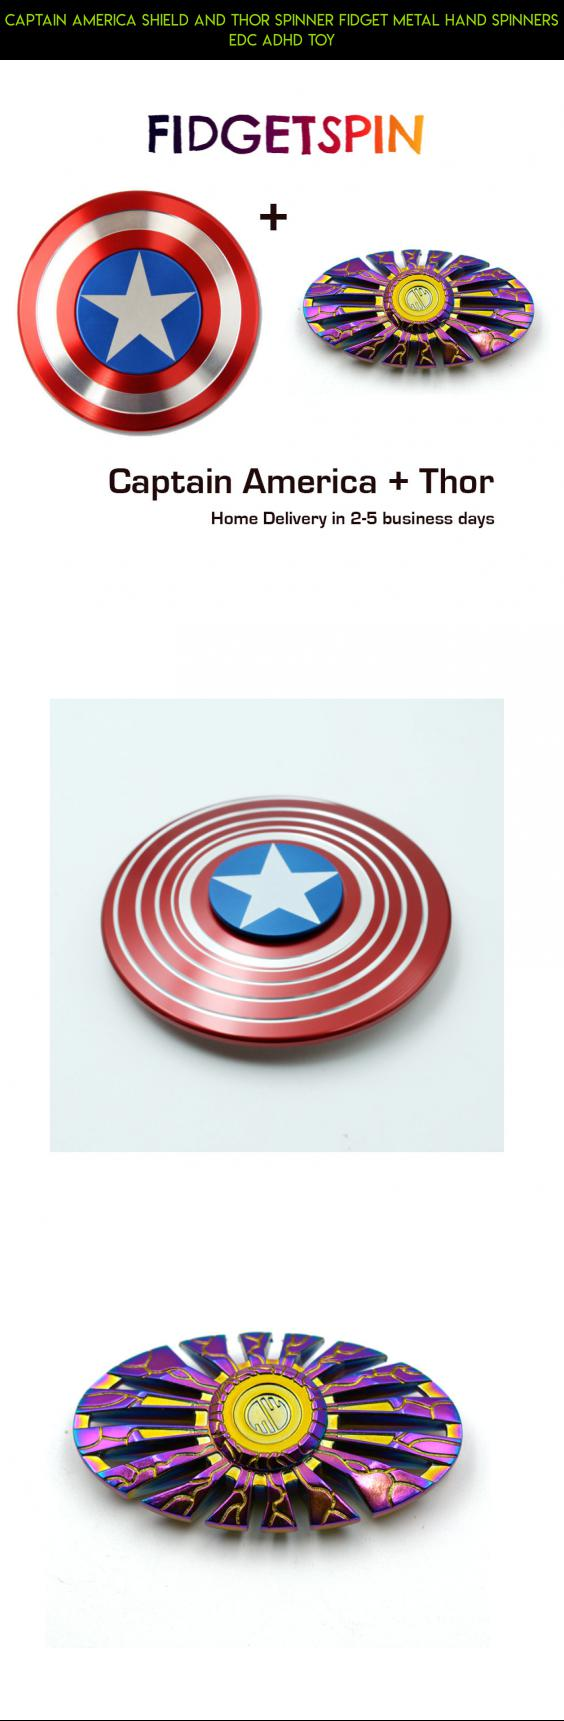 Captain America Shield And Thor Spinner Fidget Metal Hand Spinners Alumunium Edc Adhd Toy